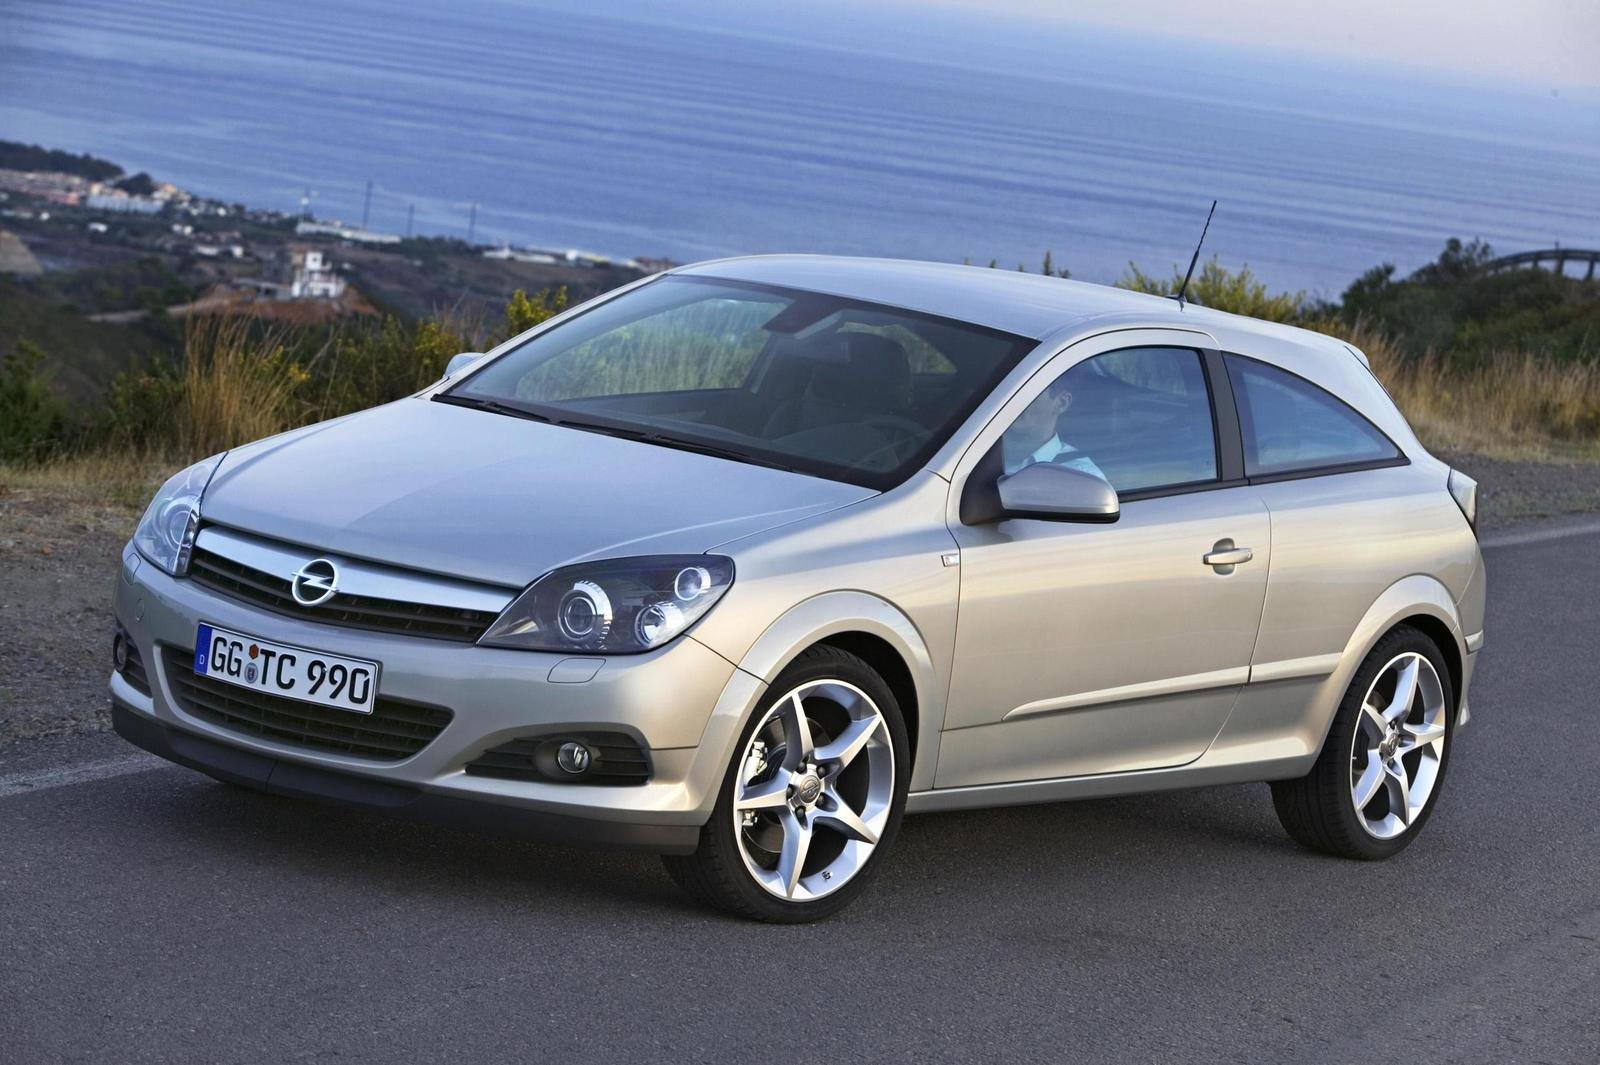 2007 opel astra gtc picture 140633 car review top speed. Black Bedroom Furniture Sets. Home Design Ideas